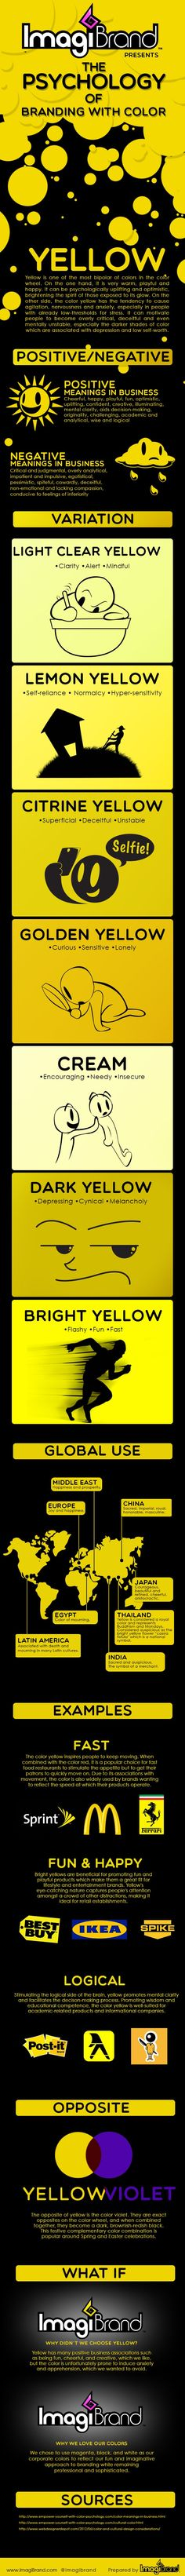 The psychology of brain with the yellow color